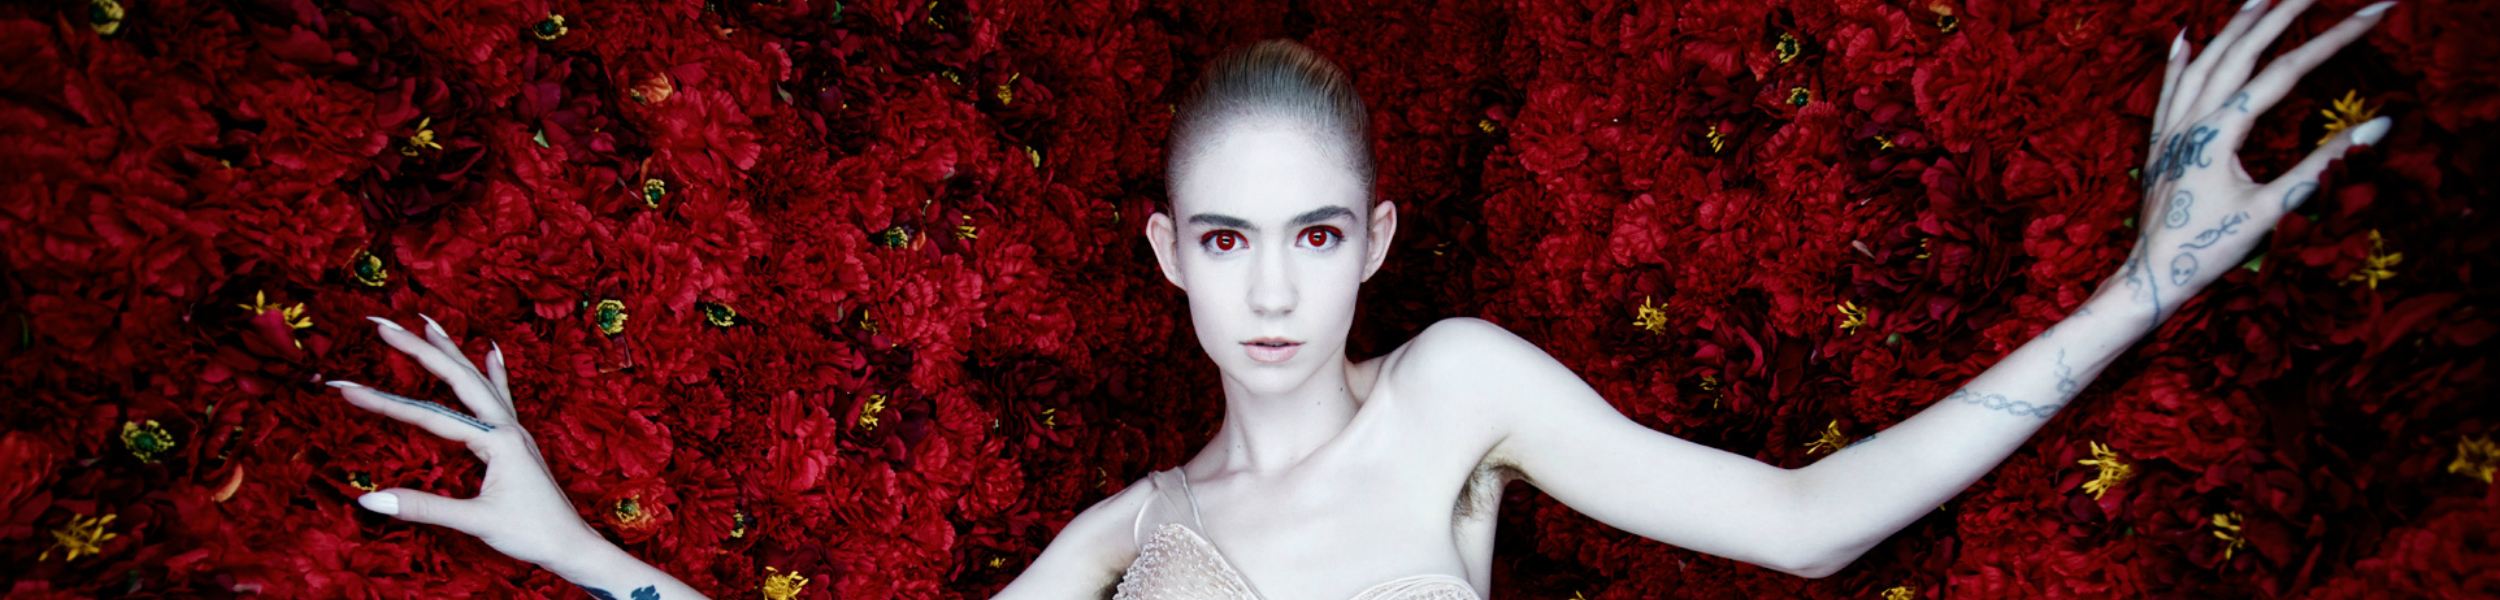 Grimes - Watch The New Video for 'Genesis' by Grimes